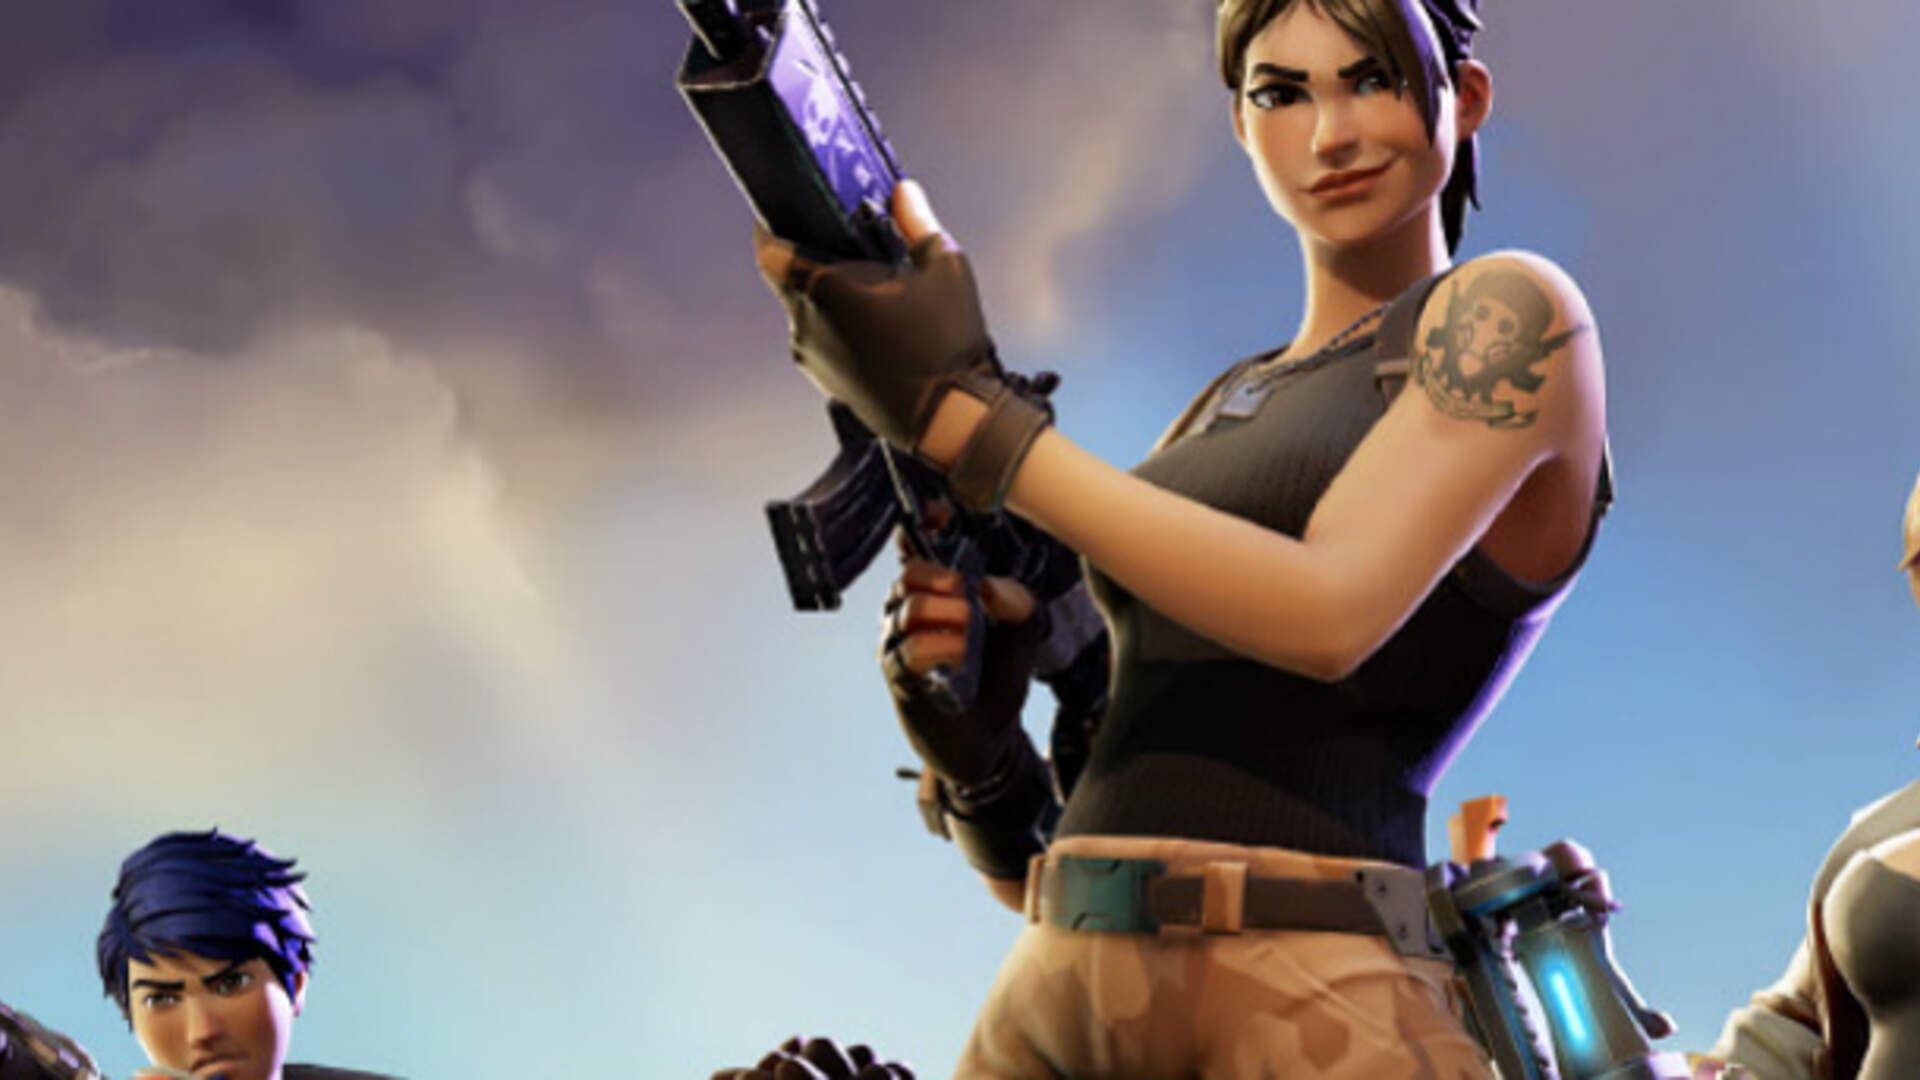 Epic Games' Fortnite Comes Out of Hiding on July 25